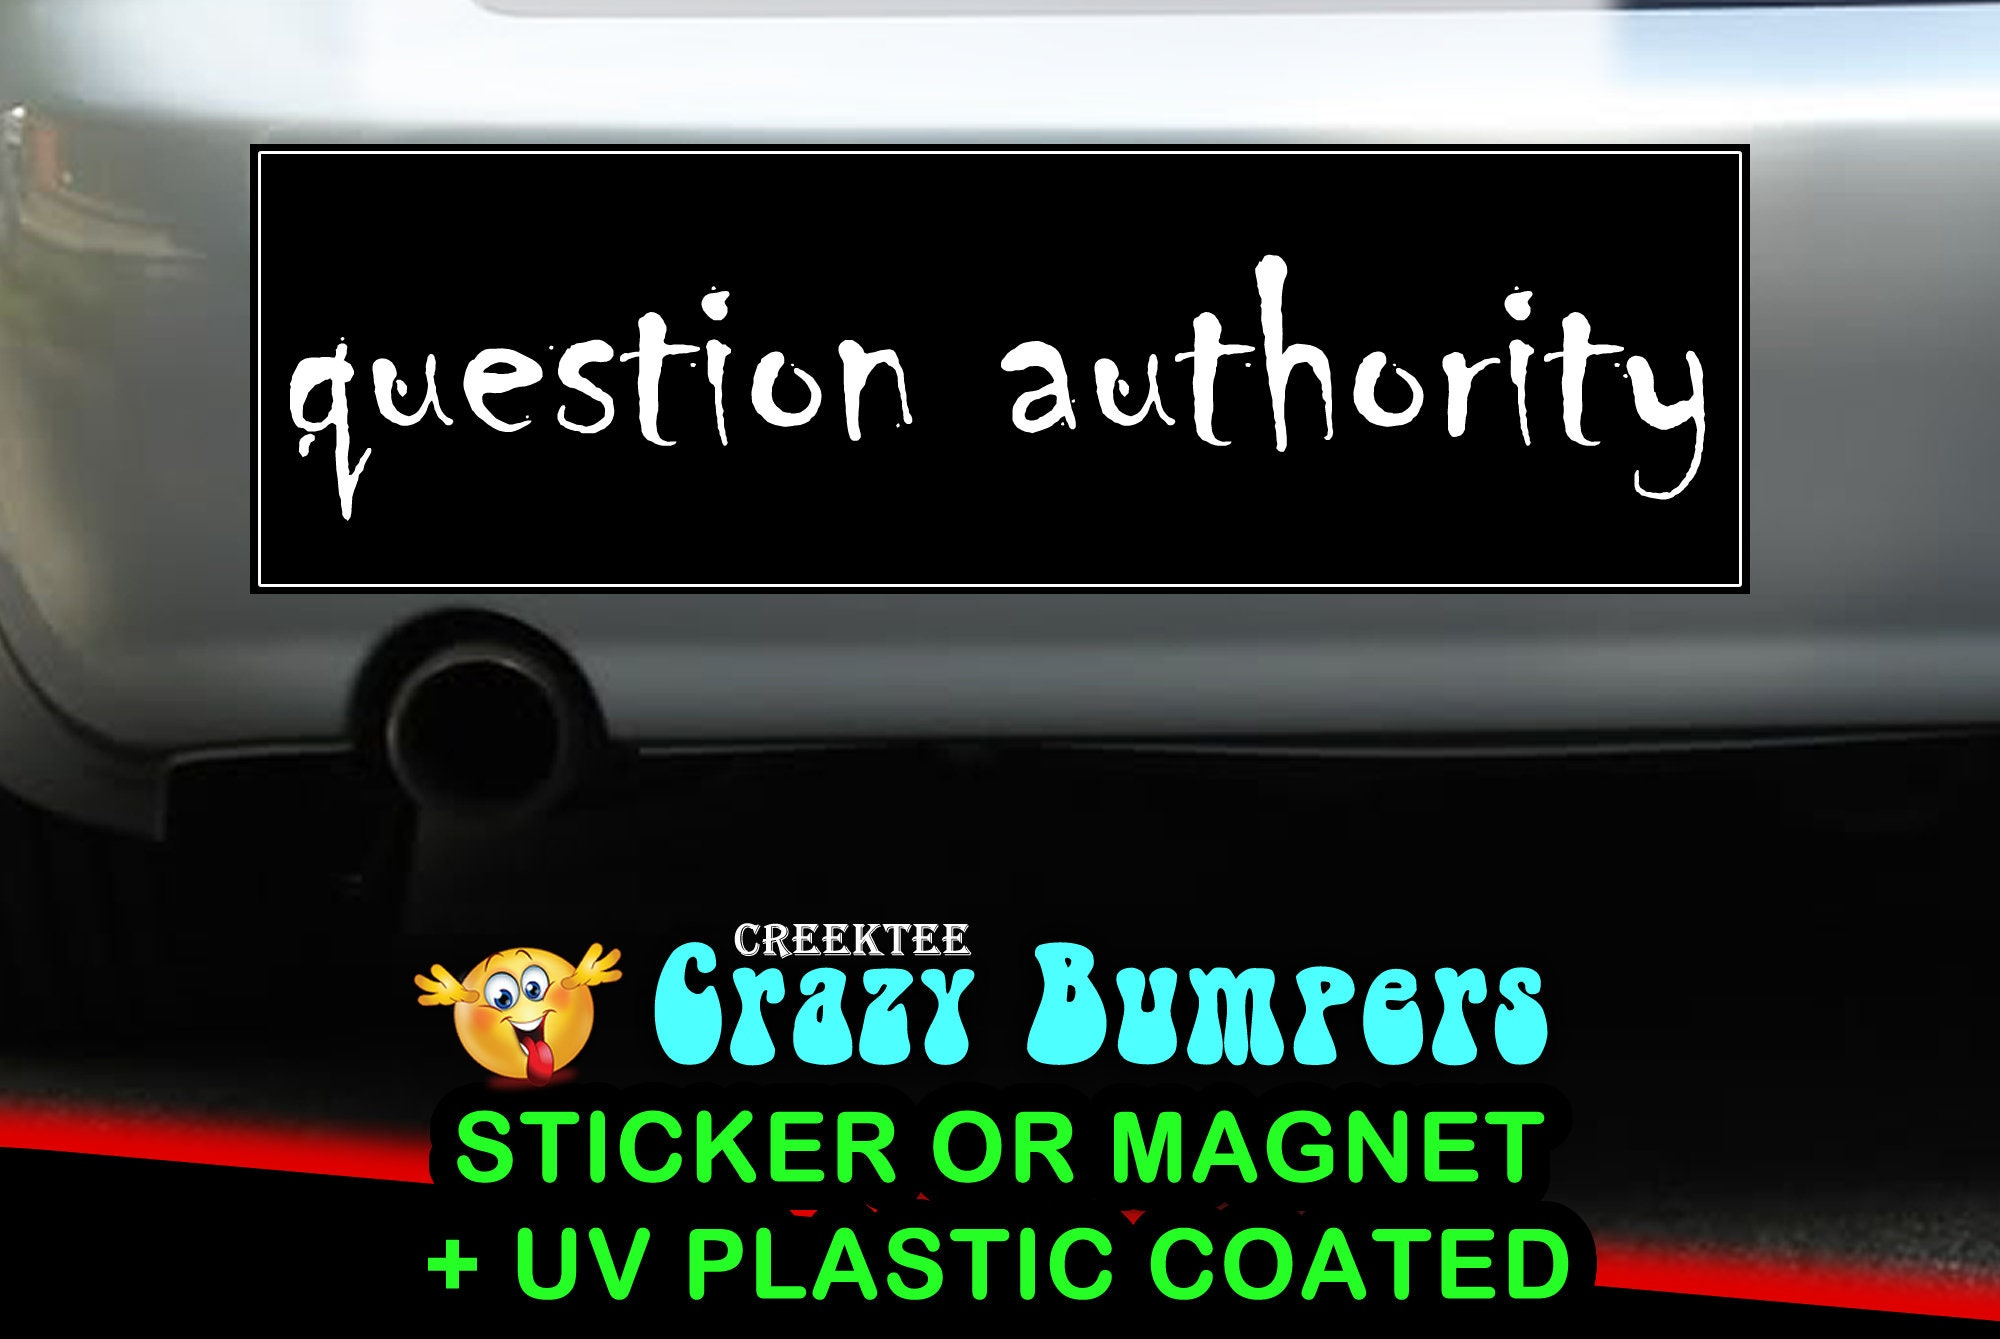 CAD$7.99 - question authority Bumper Sticker 10 x 3 Bumper Sticker or Magnetic Bumper Sticker Available